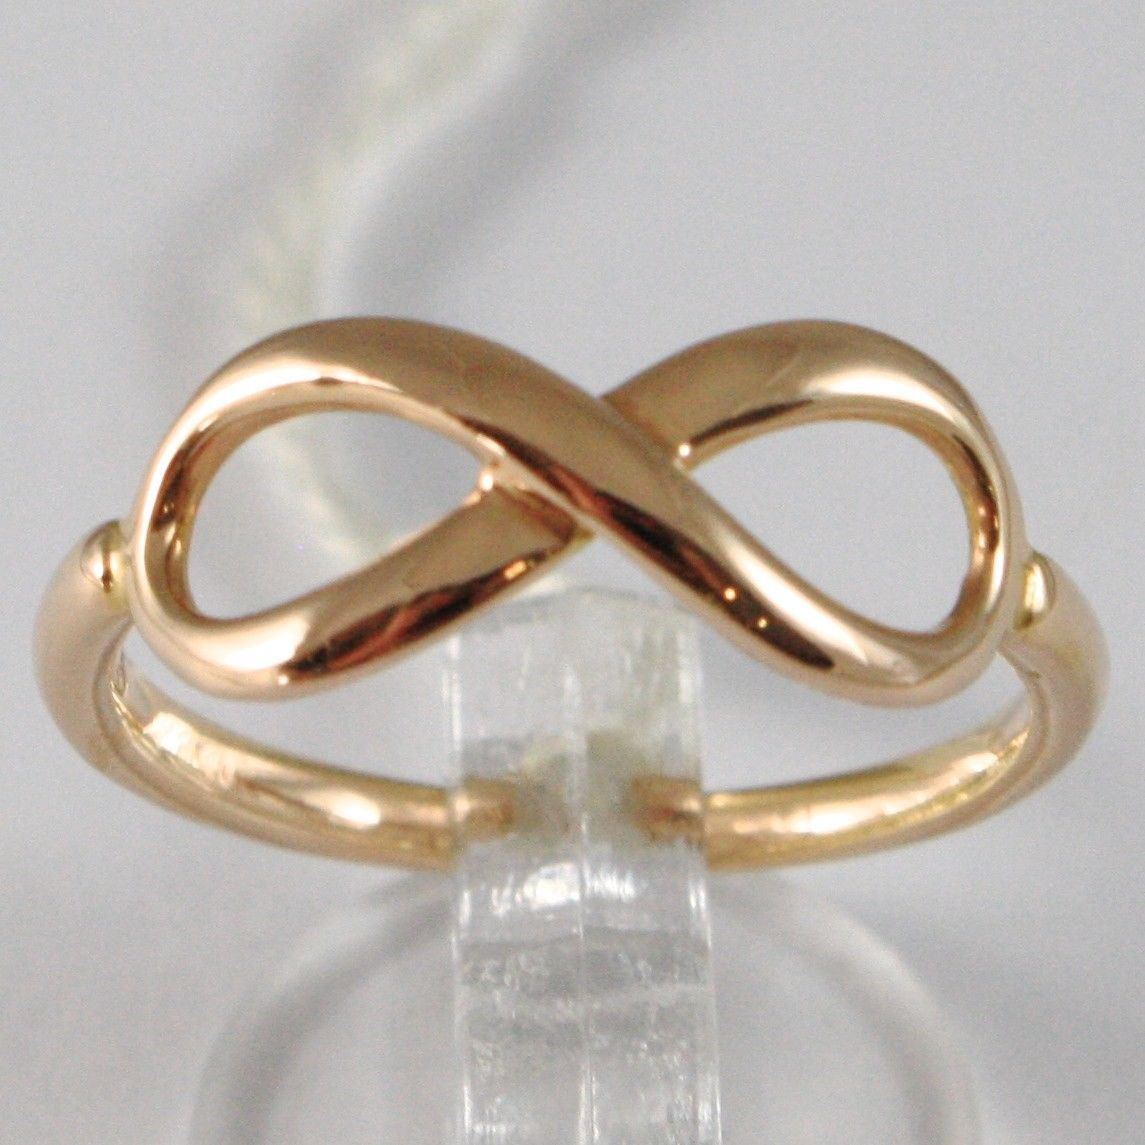 ANILLO DE ORO ROSA 750 18 CT, SÍMBOLO INFINITO, MADE IN ITALY